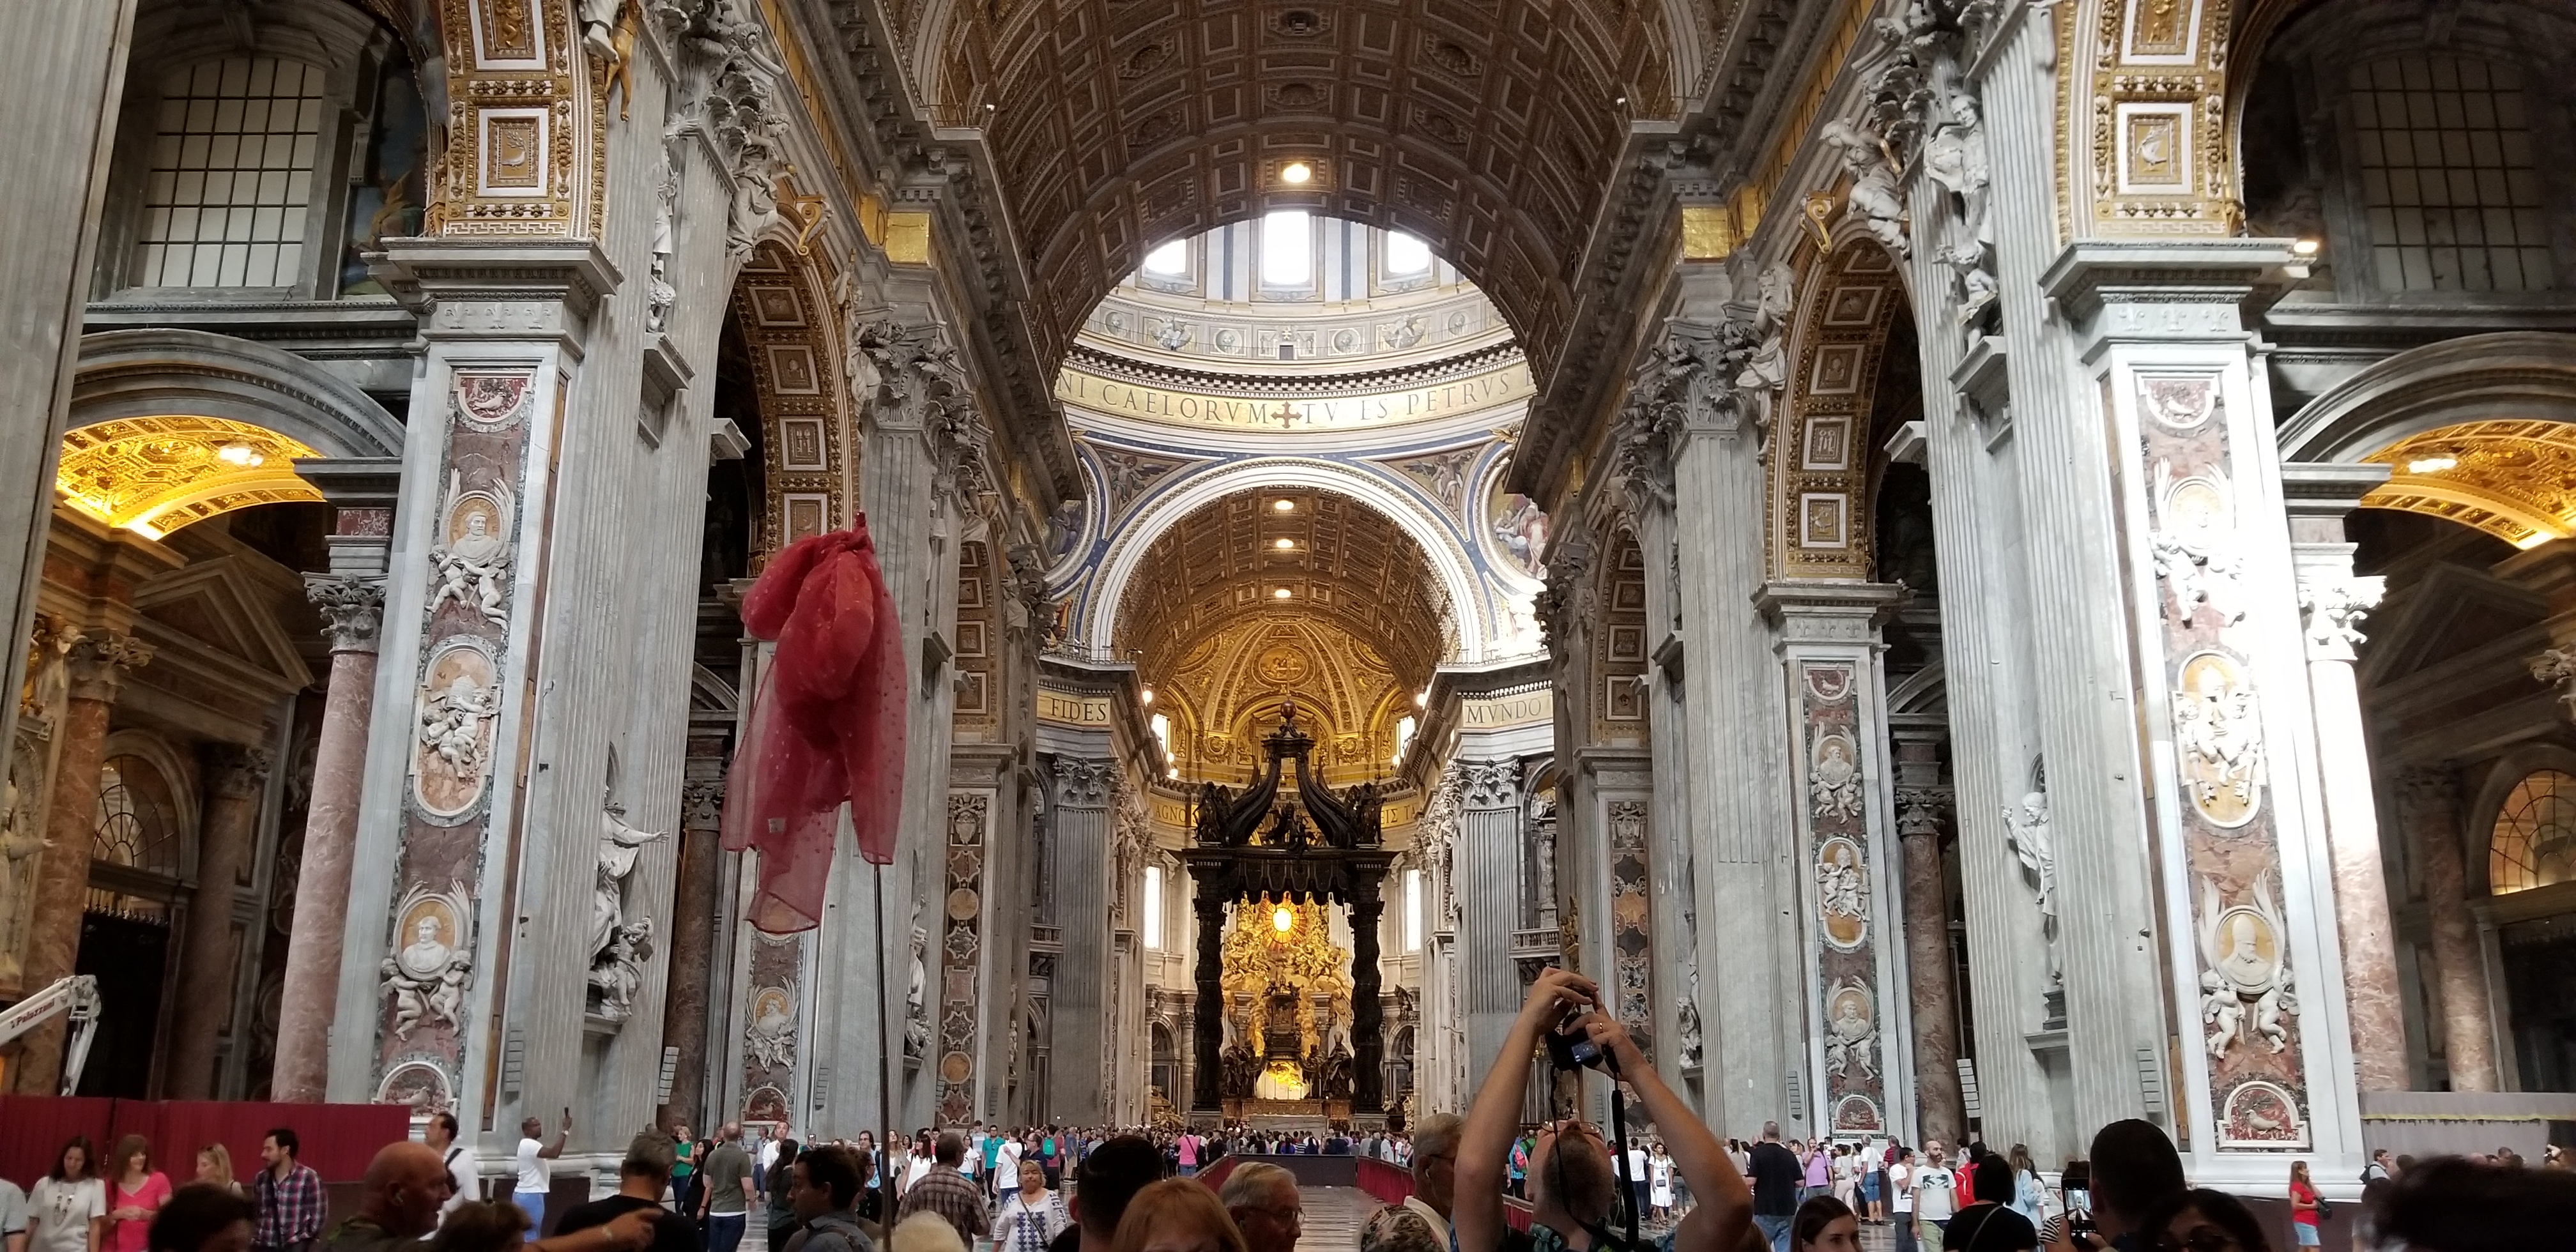 Saint Peters Basilica, Vatican City - Senior Trip to Rome